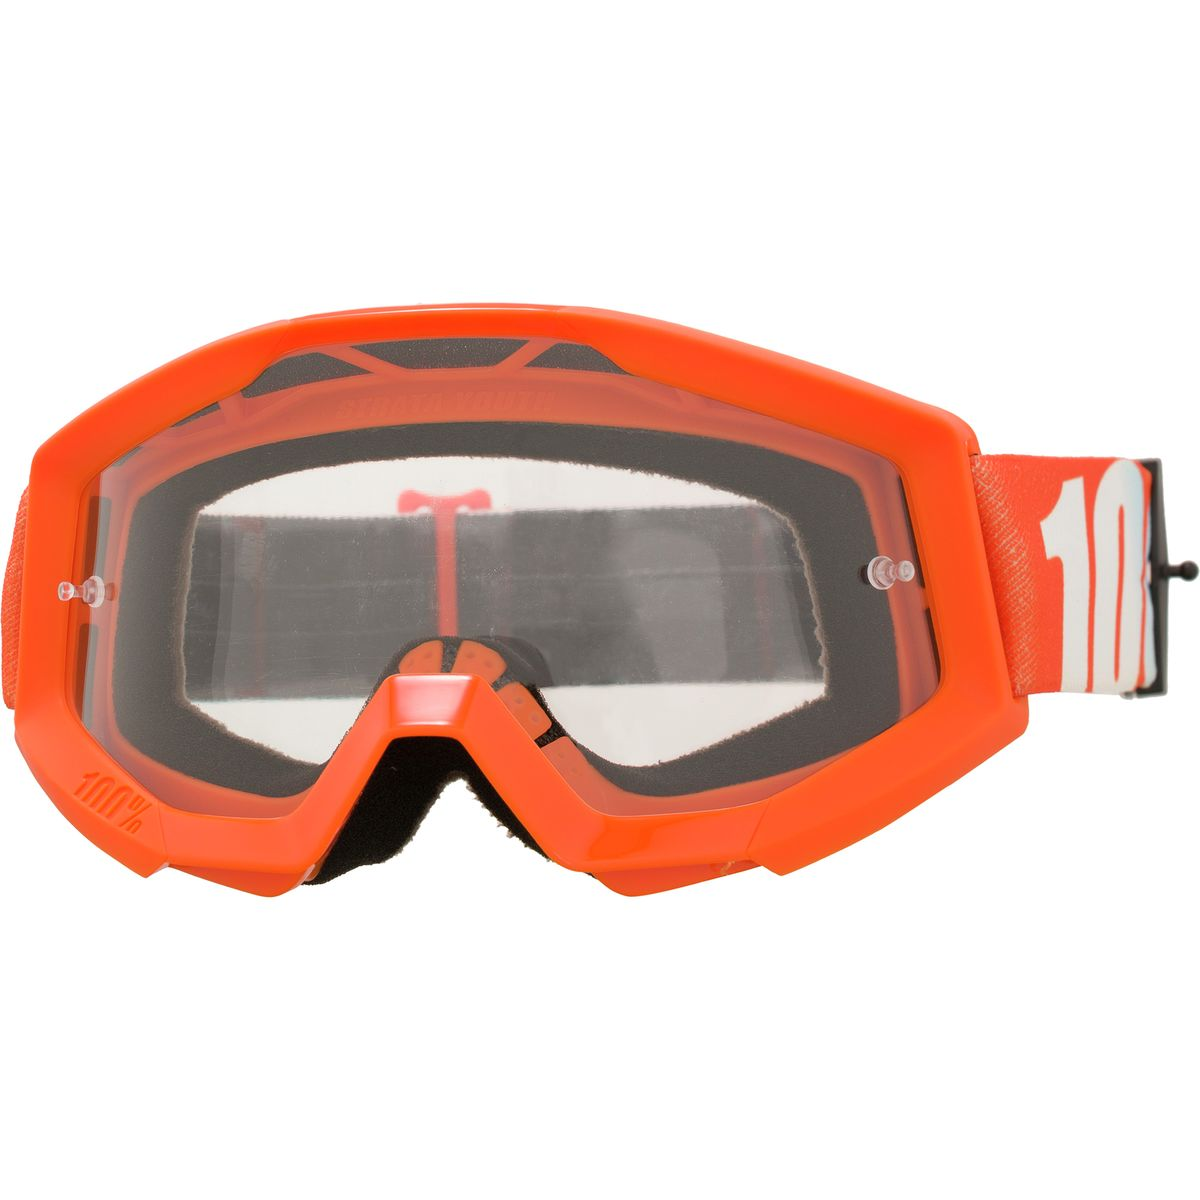 100% Strata Goggles - Kids' Goggle Orange - Clear Lens, One Size